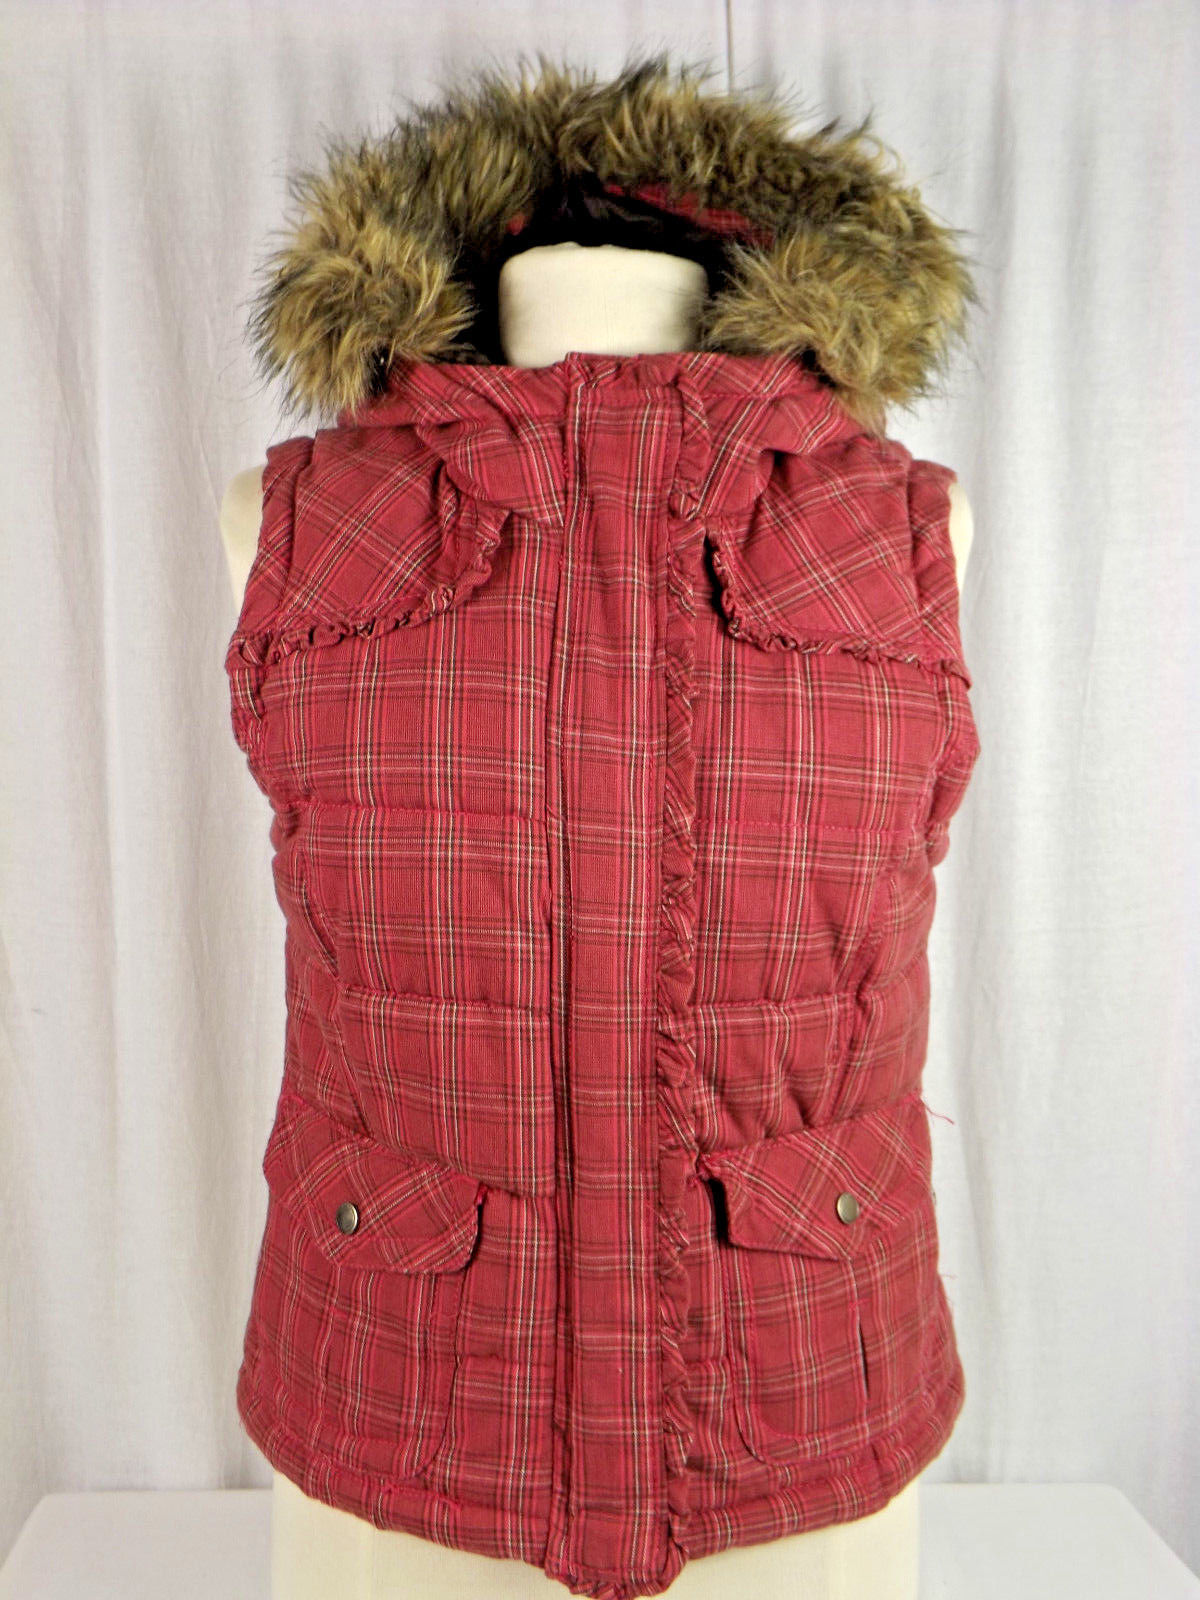 Primary image for Aeropostale Fur Plaid Faux Fur Hooded Puffer Vest Size M / Medium